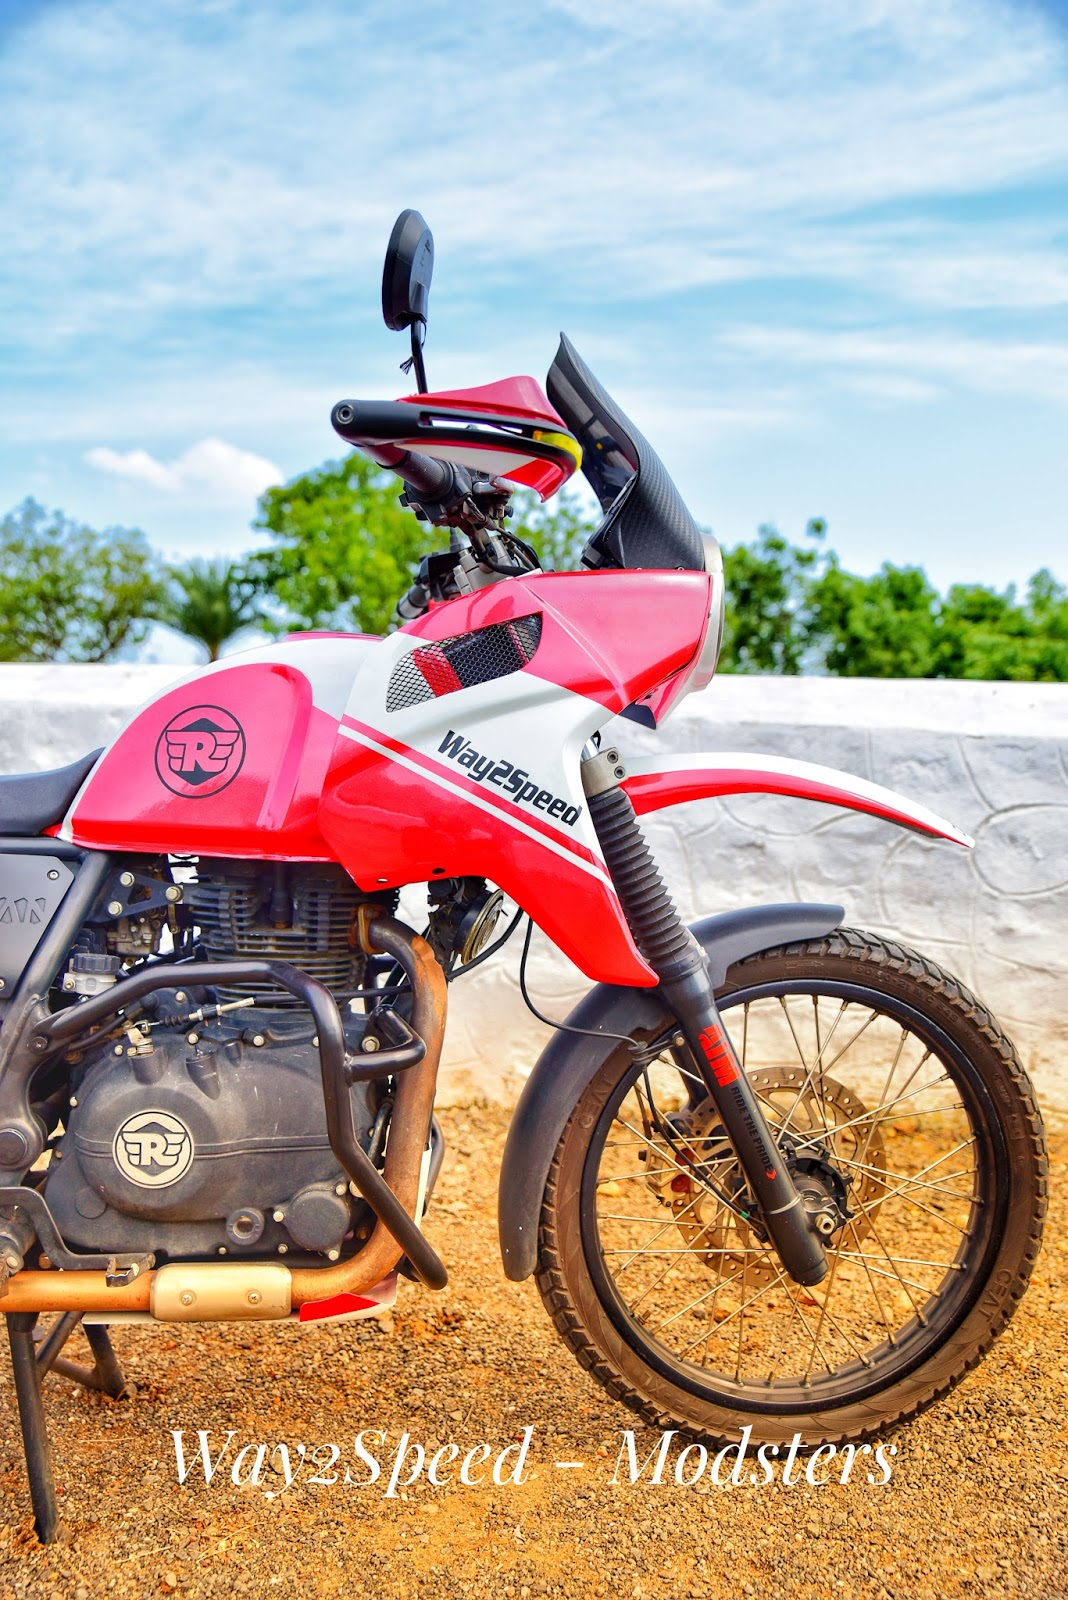 Seat Height Of Enfield Himalayan